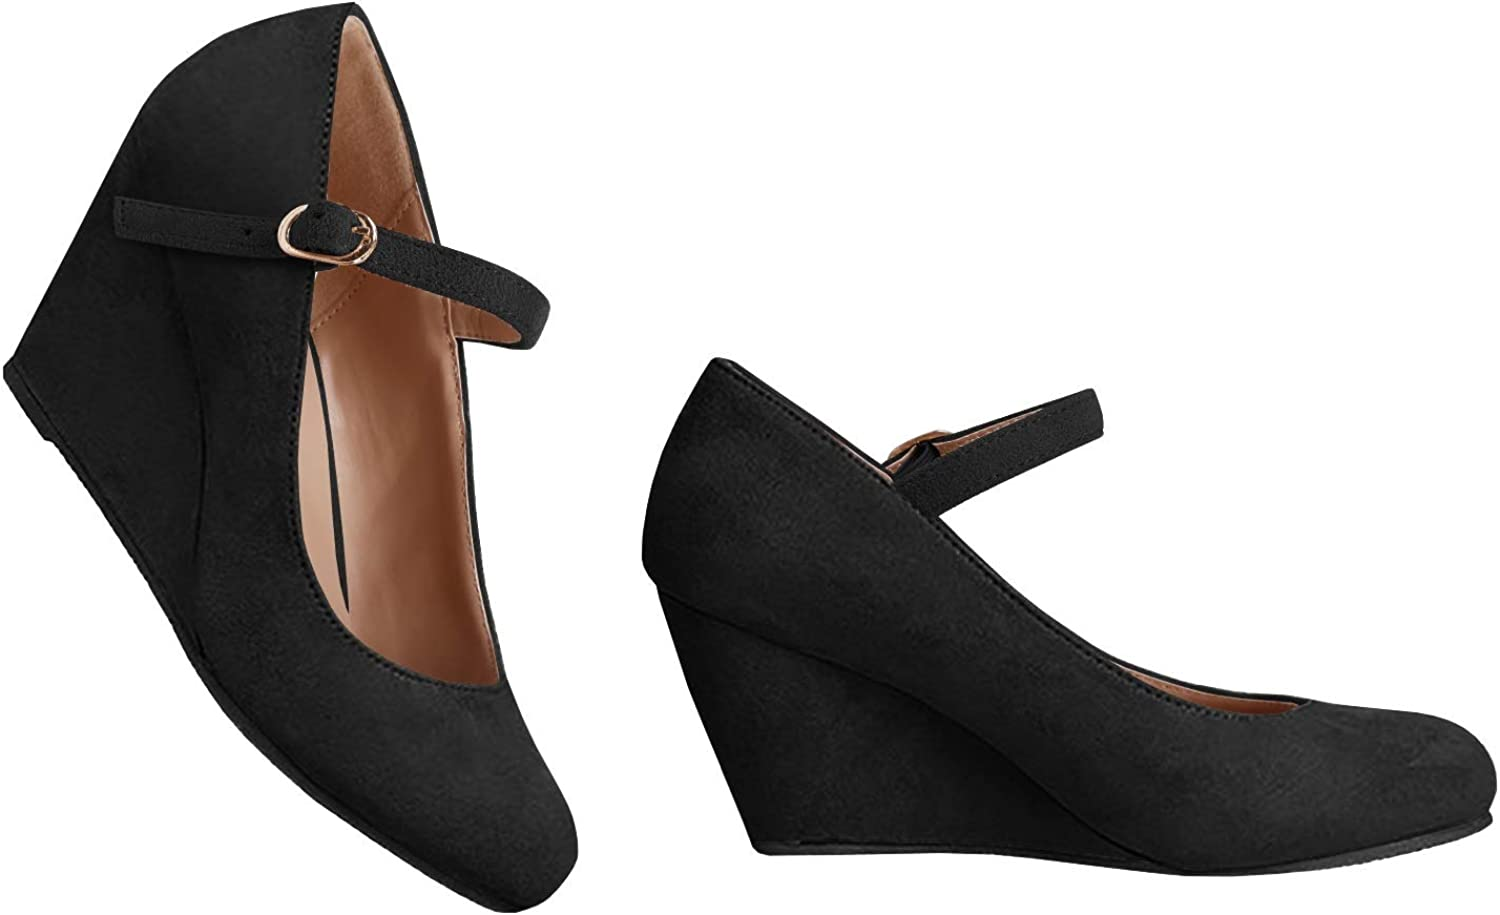 Syktkmx Womens Wedge Heels Pumps Mary